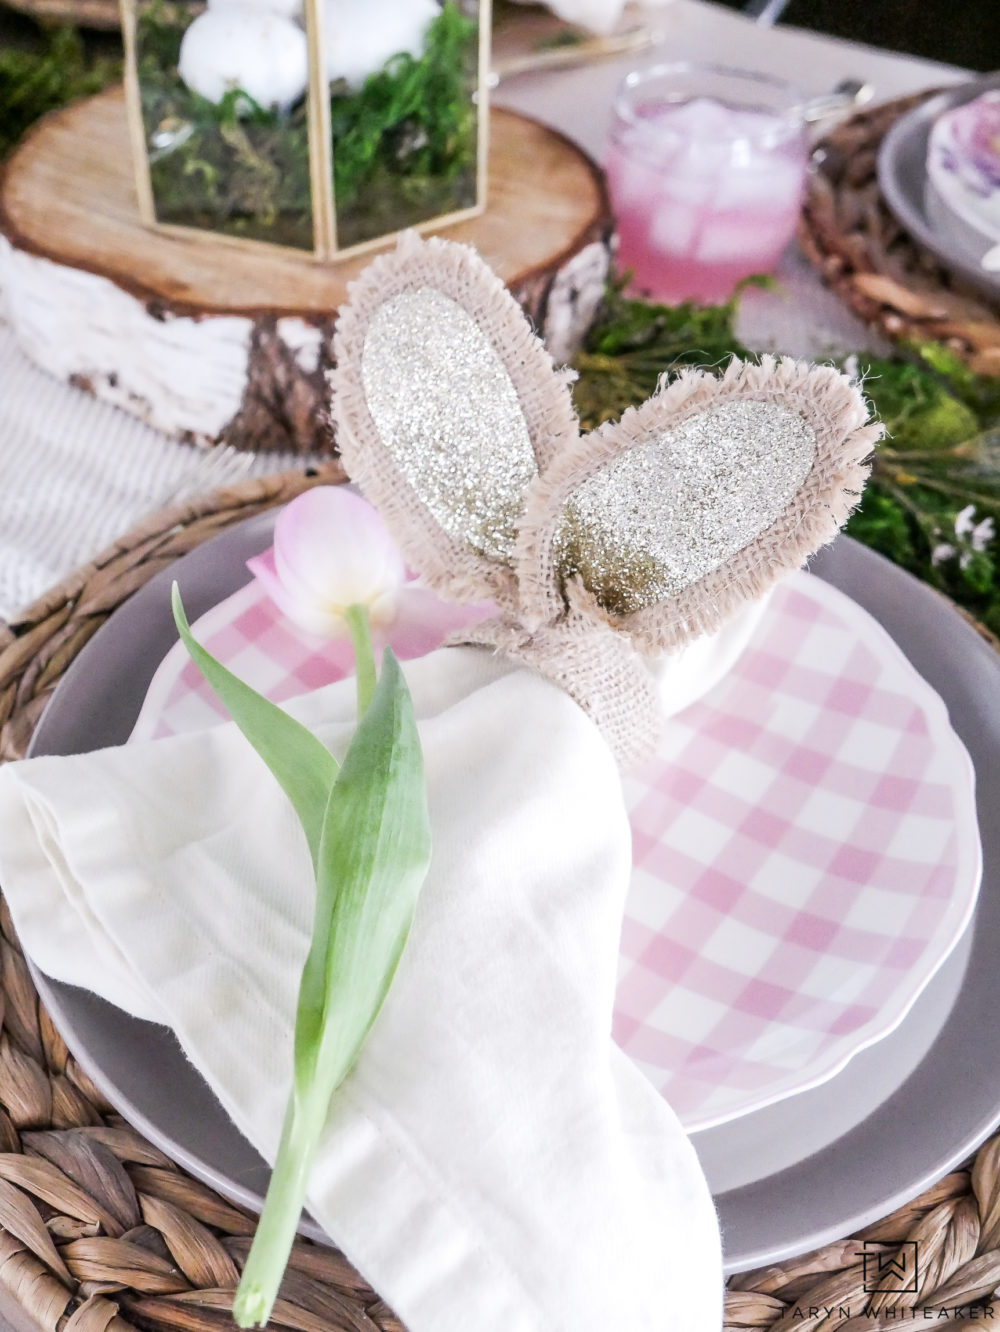 Bunny Ear Napkin Rings makes this sweet Easter Table complete!